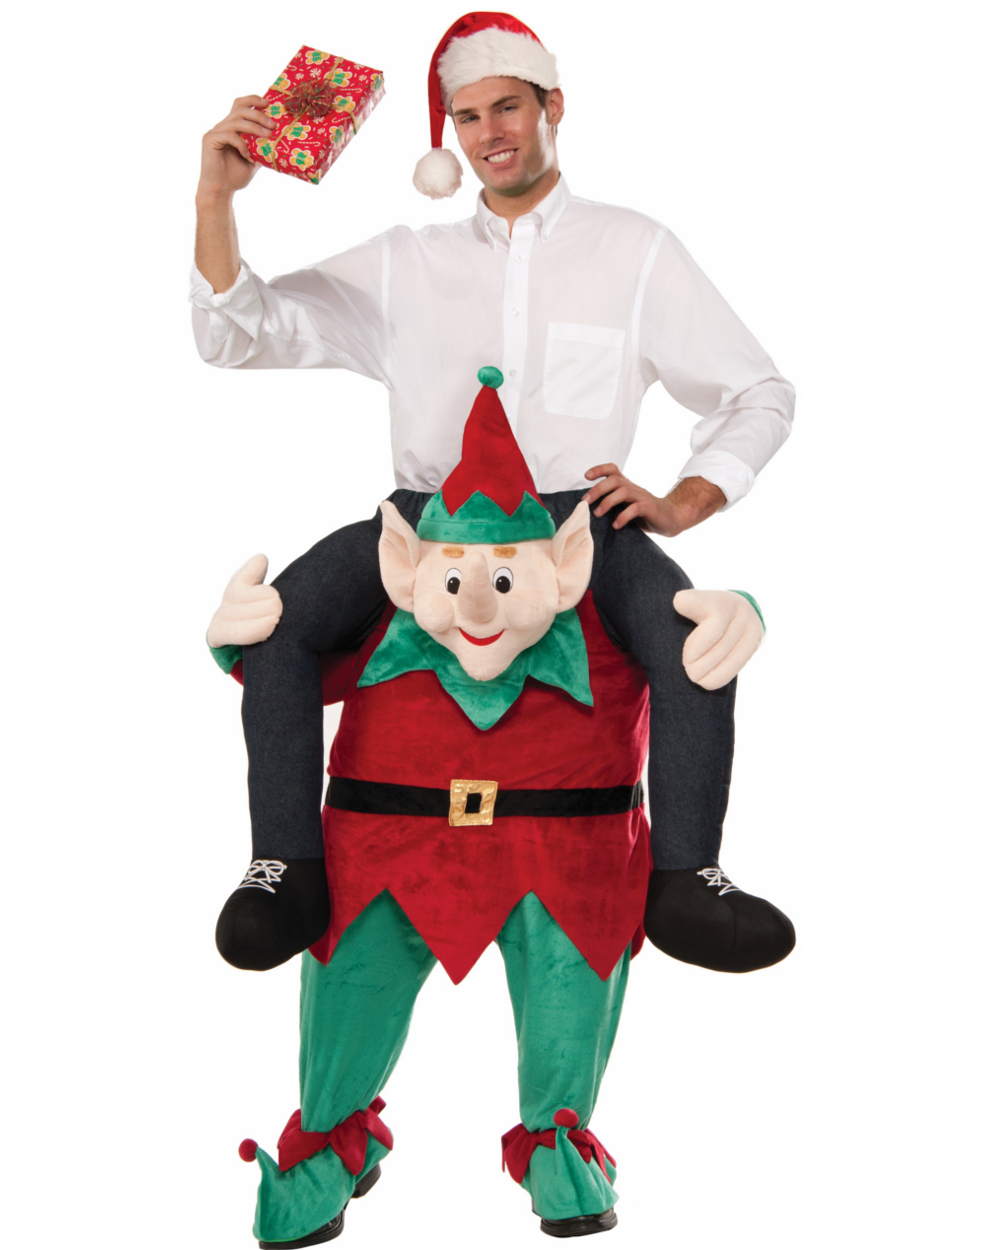 Mens 34  Myself On An Elf Riding Elf Christmas Plush Mascot Costume - Walmart.com  sc 1 st  Walmart & Mens 34